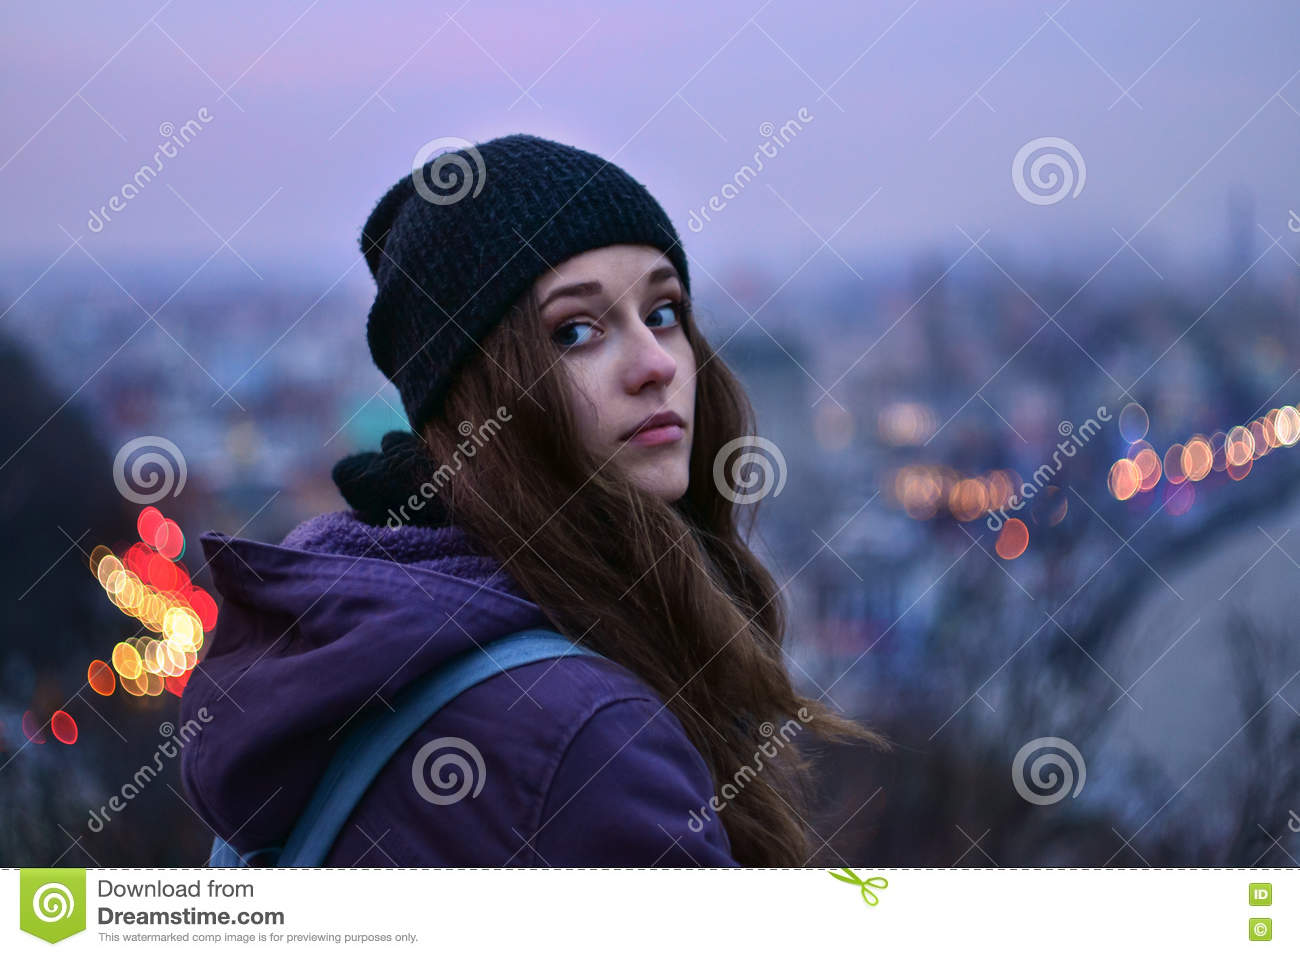 Girl traveler standing in front of winter evening cityscape